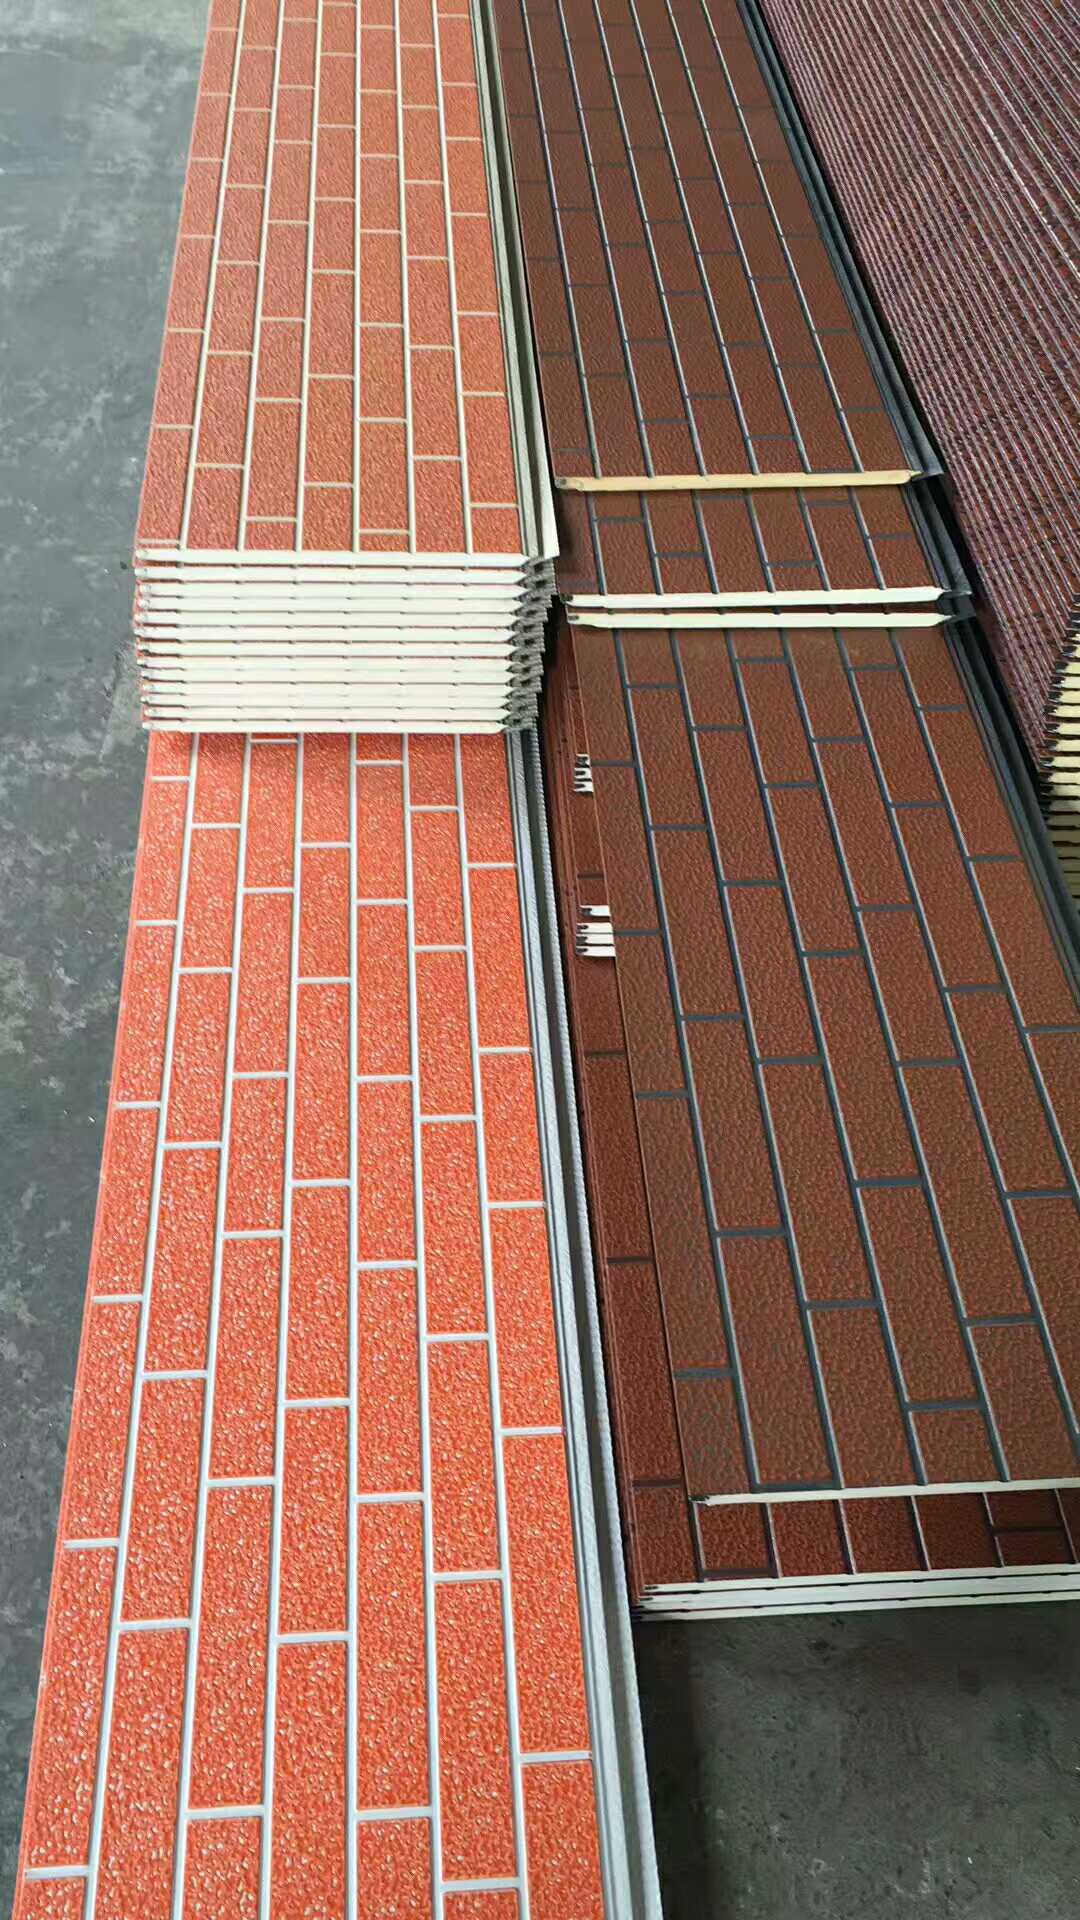 Exterior insulation board dry hanging residential decorative heat preservation material integrated thermal insulation board